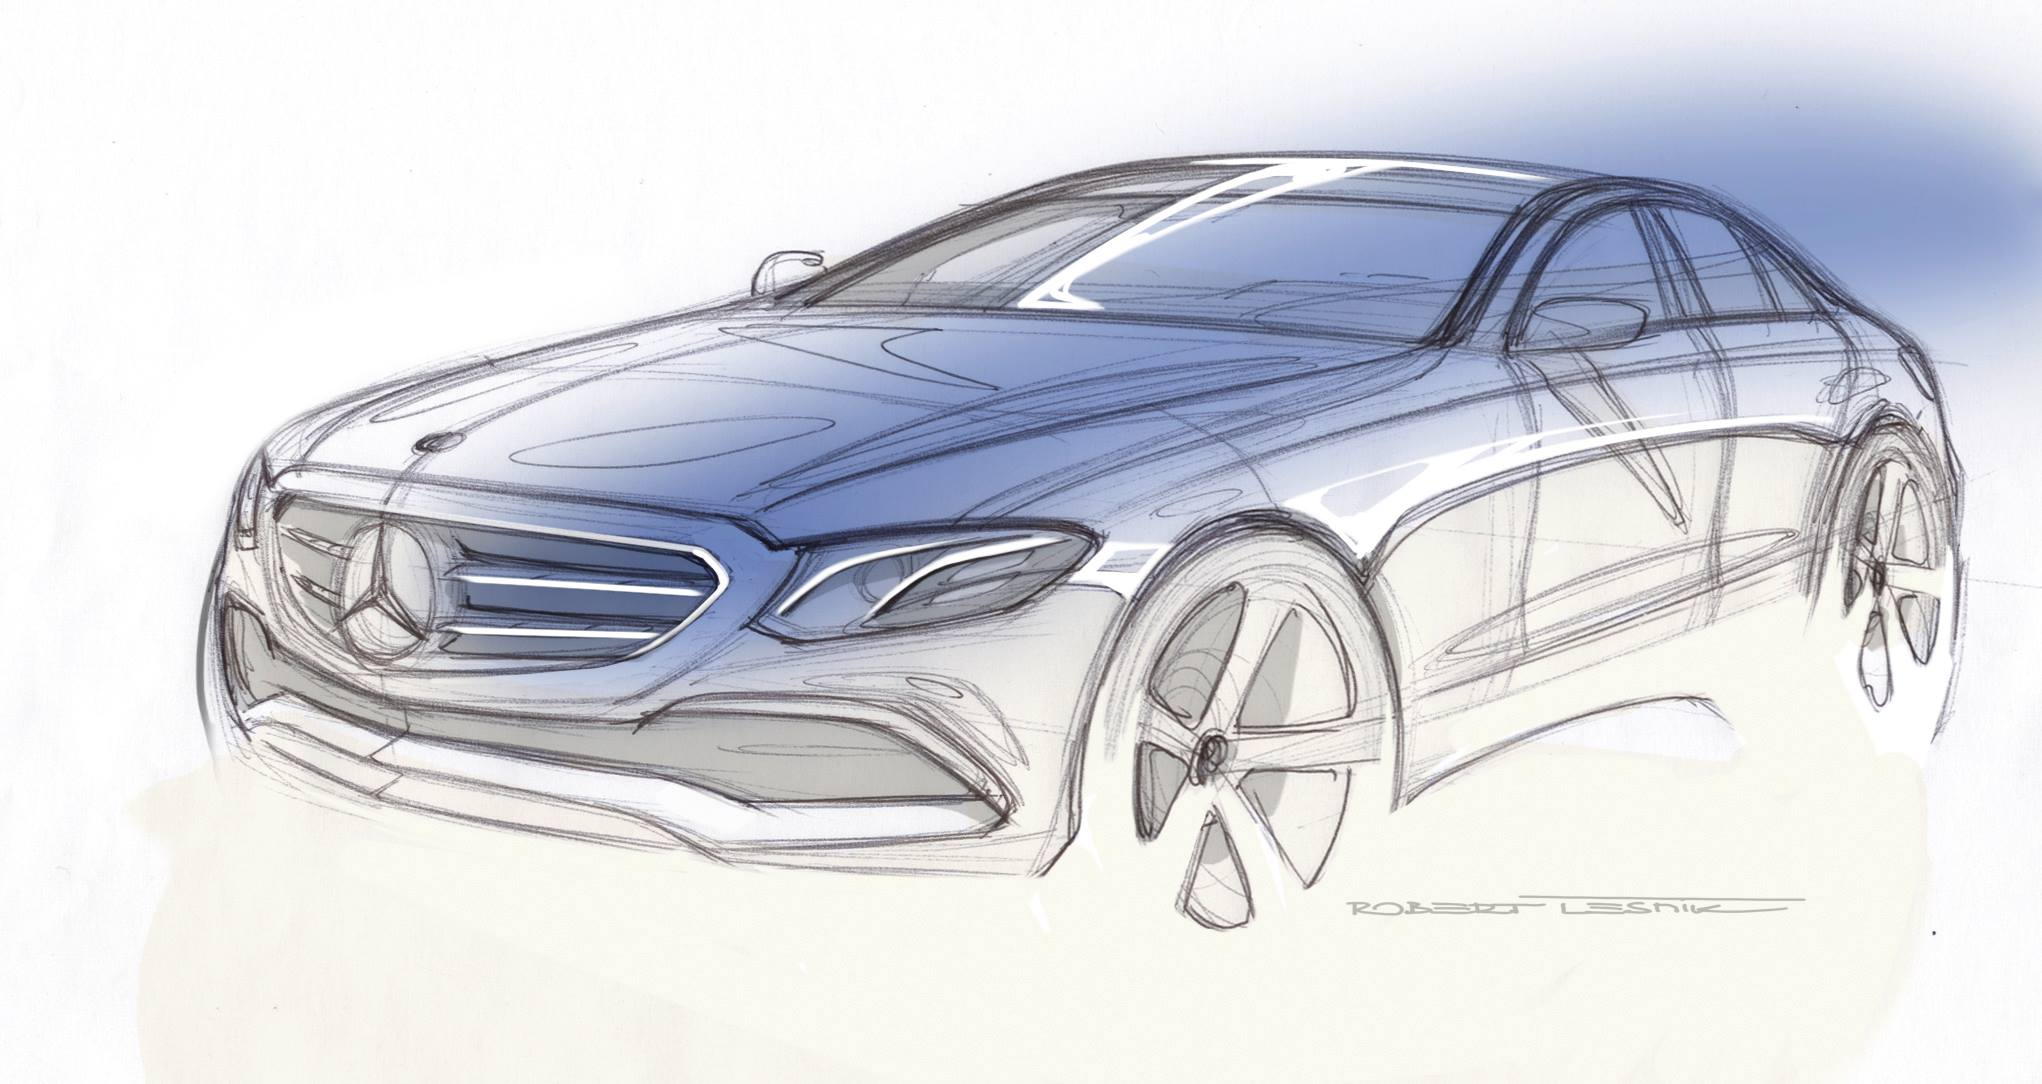 2017 Mercedes-Benz E-Class Exterior Design Revealed